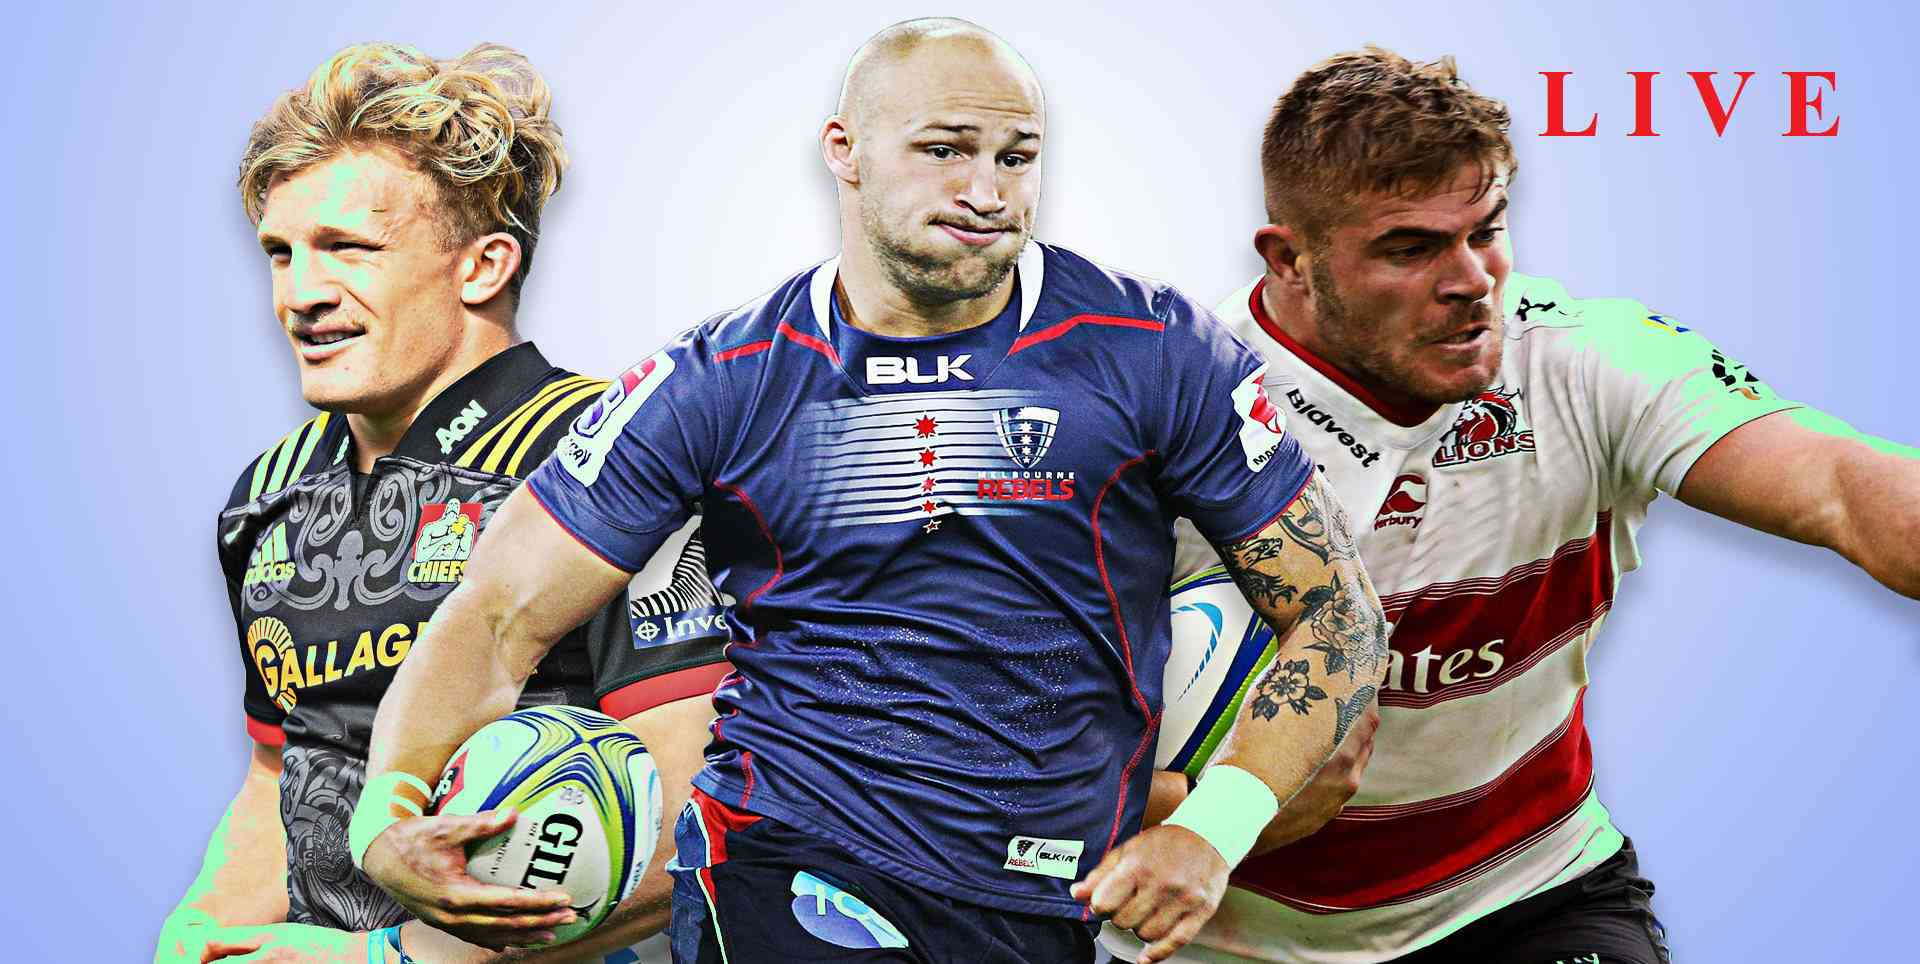 brumbies-vs-rebels-rugby-2018-live-stream